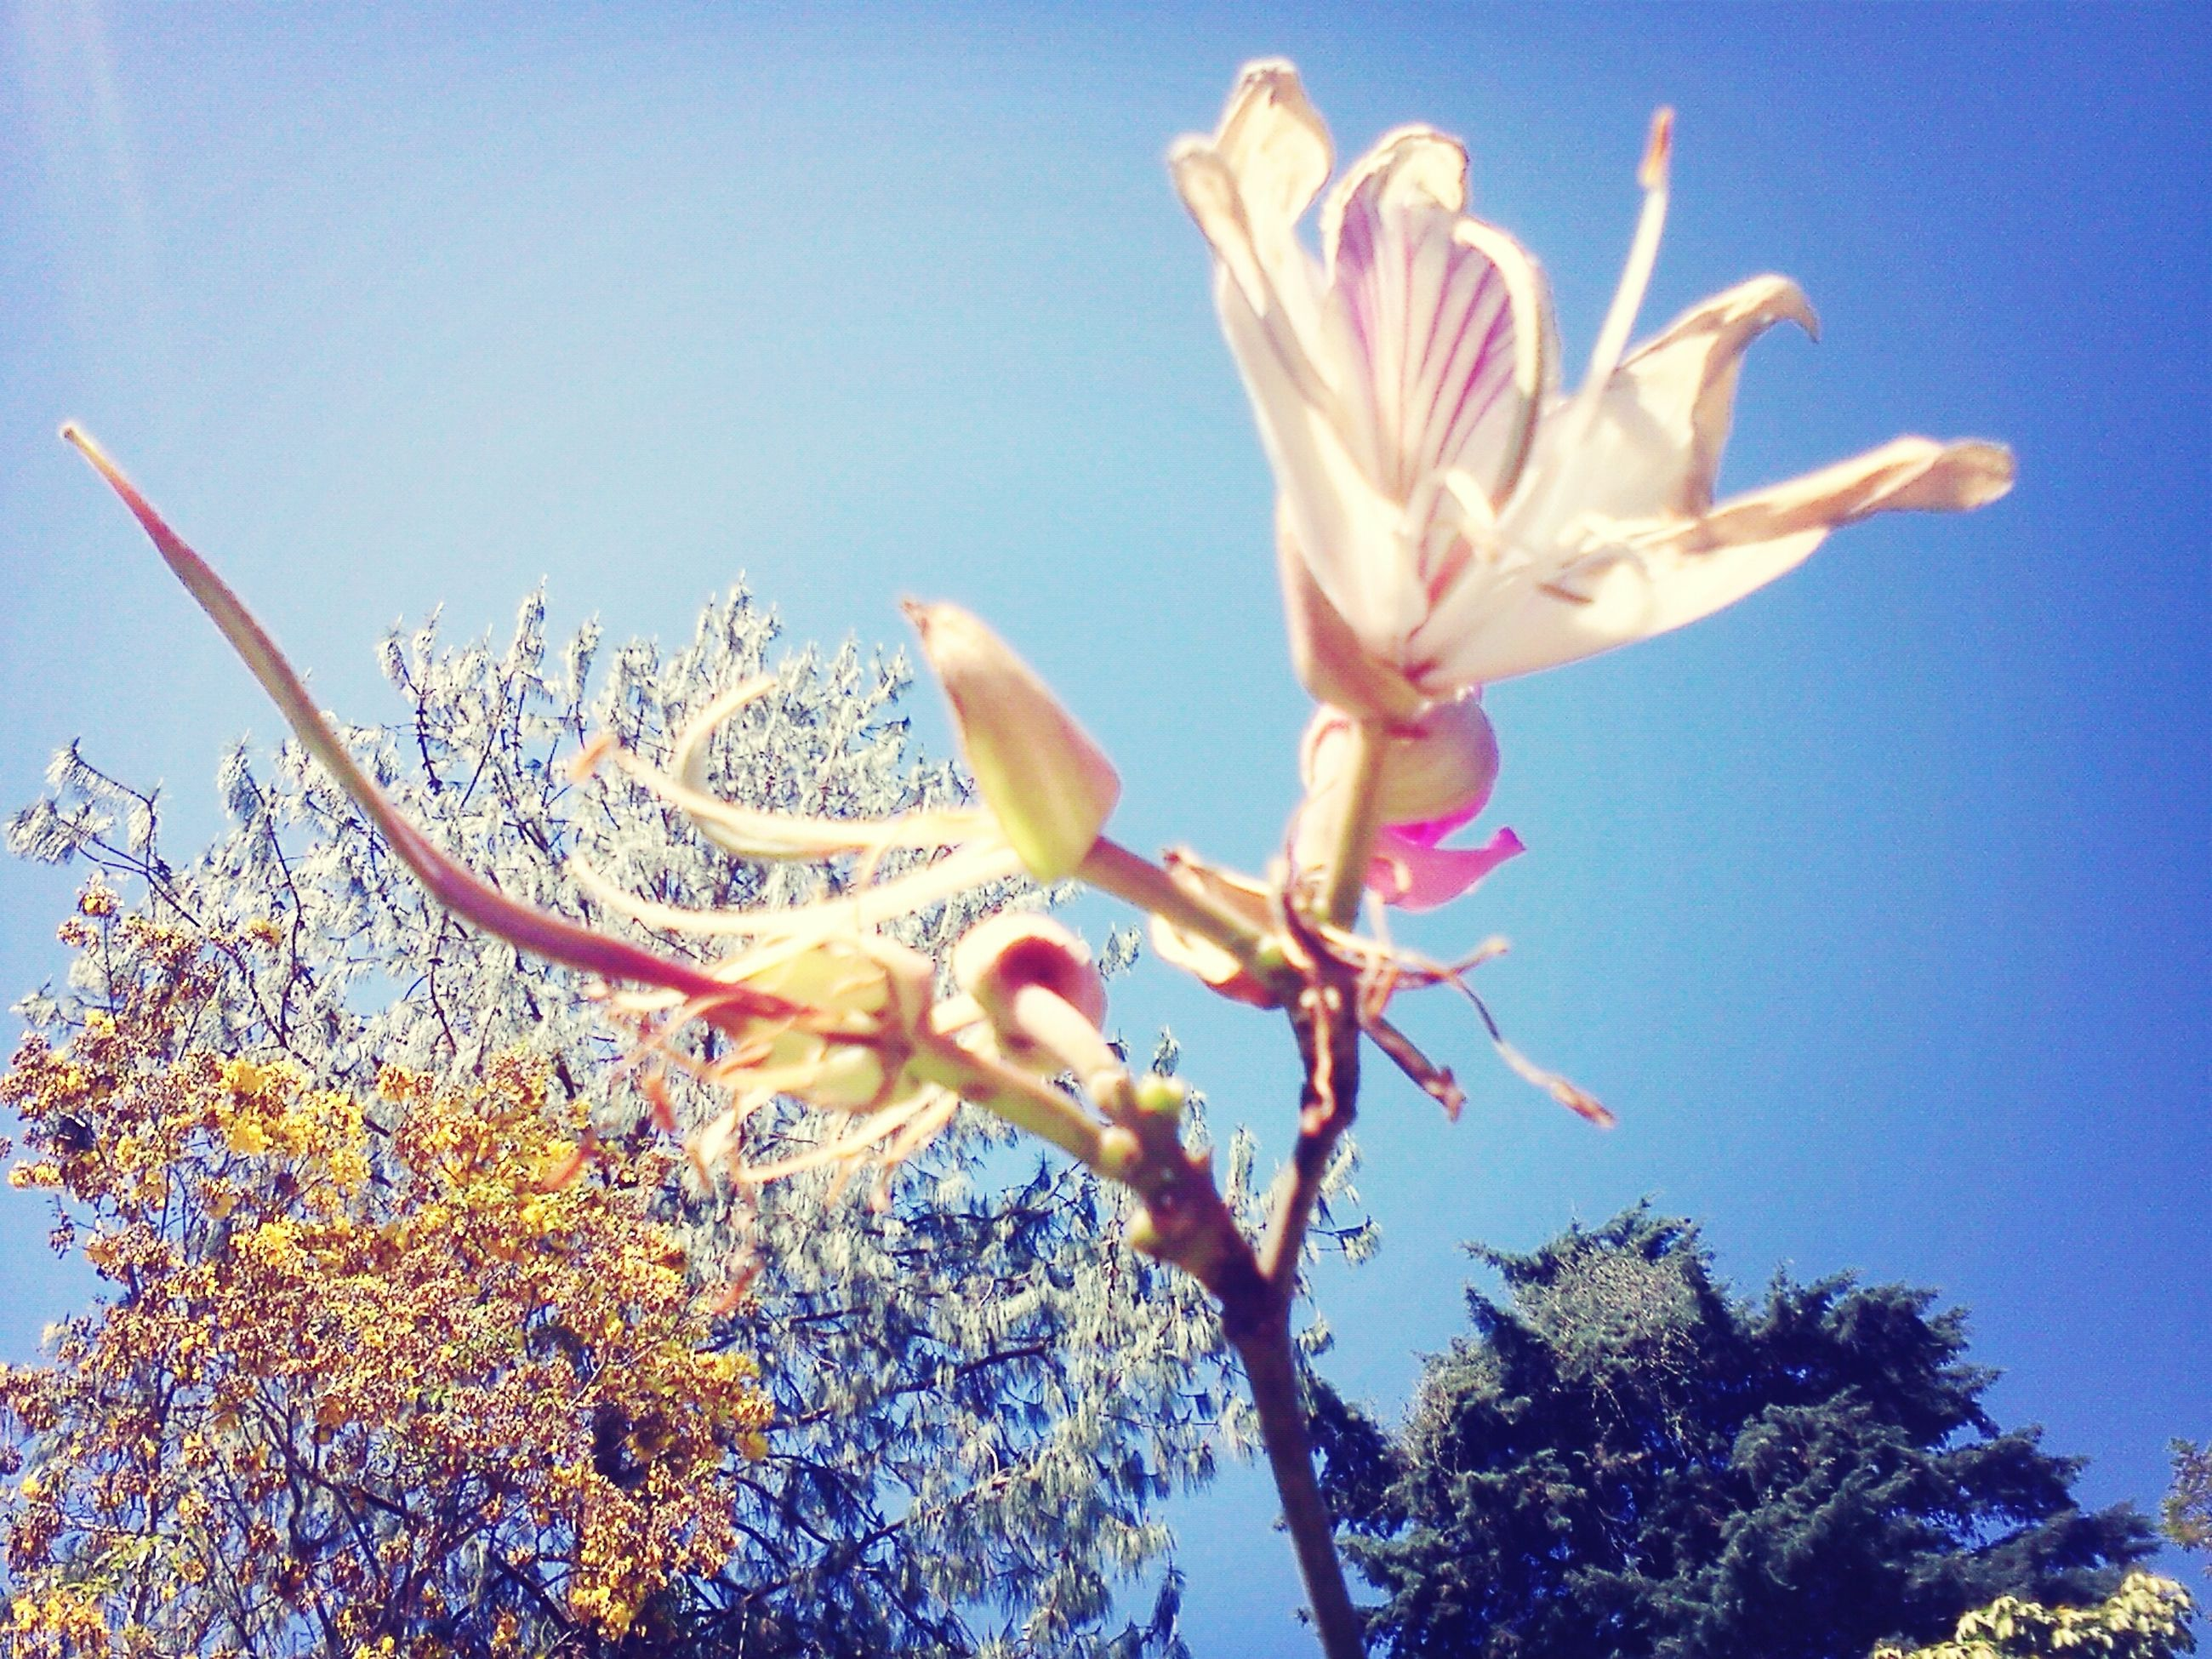 flower, low angle view, clear sky, growth, fragility, blue, freshness, beauty in nature, nature, petal, tree, blooming, branch, sky, plant, day, in bloom, close-up, copy space, no people